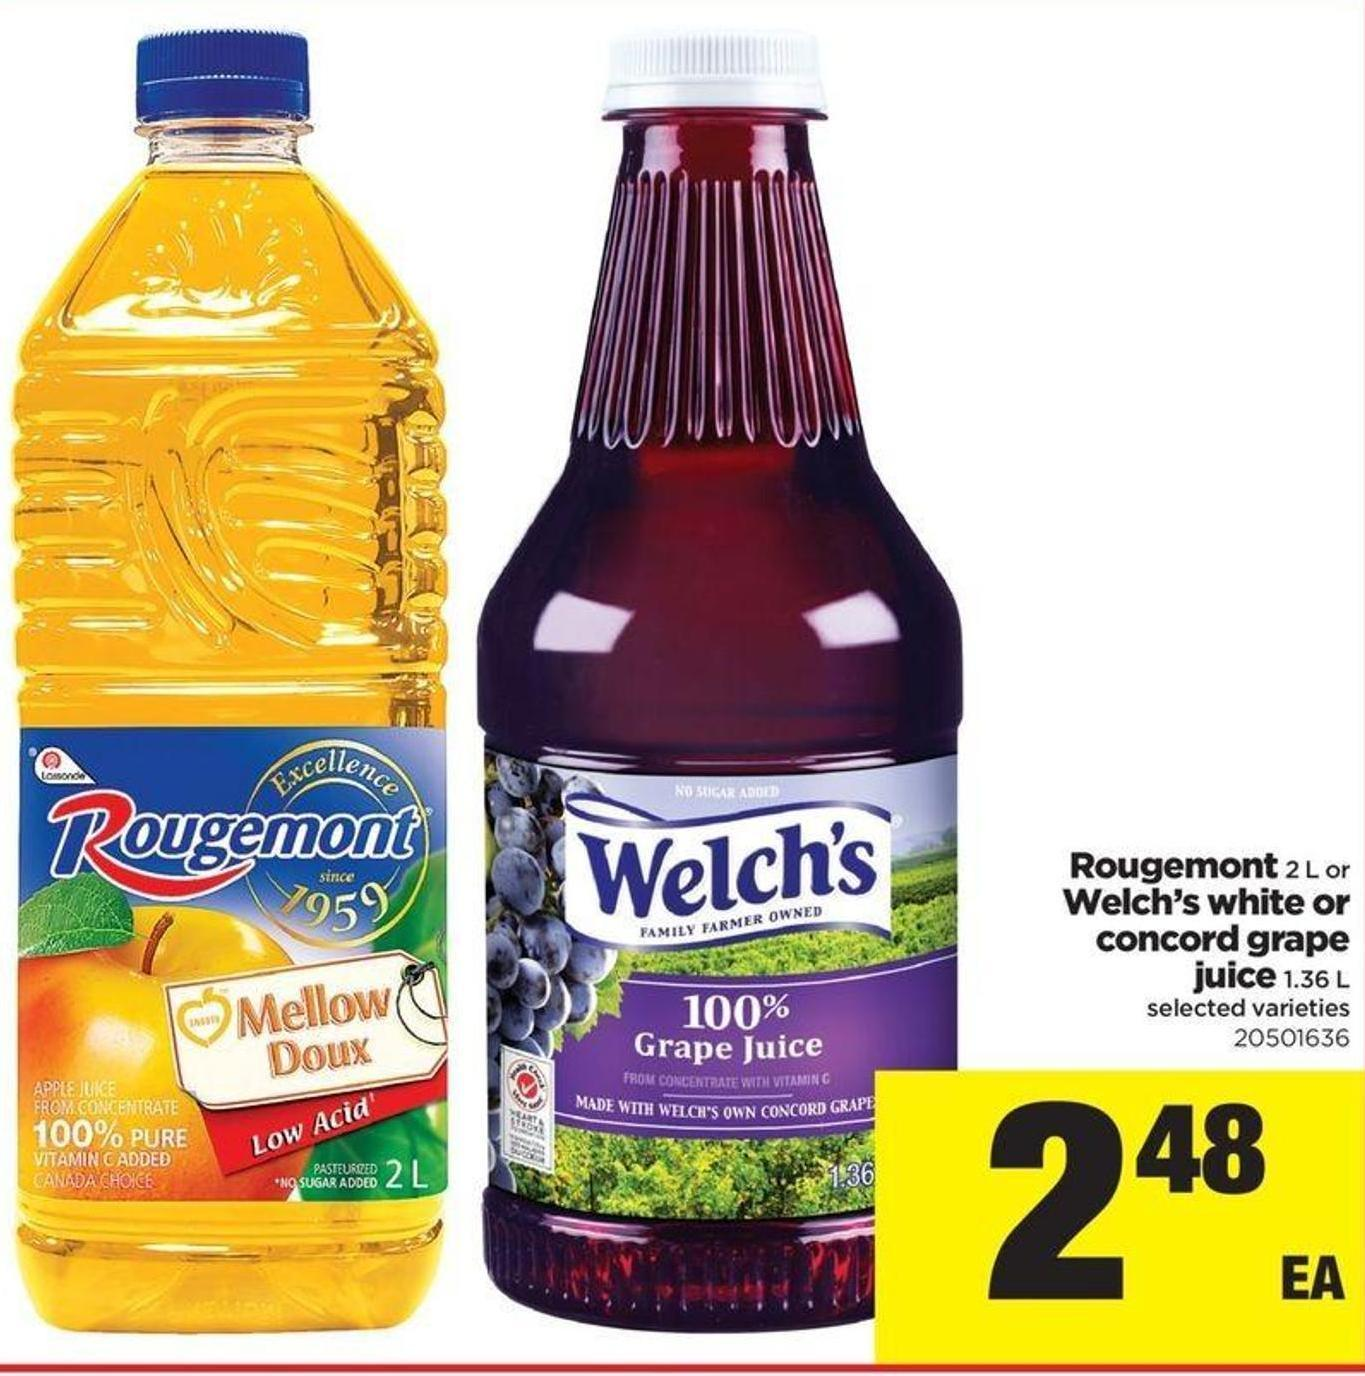 Rougemont 2 L Or Welch's White Or Concord Grape Juice 1.36 L